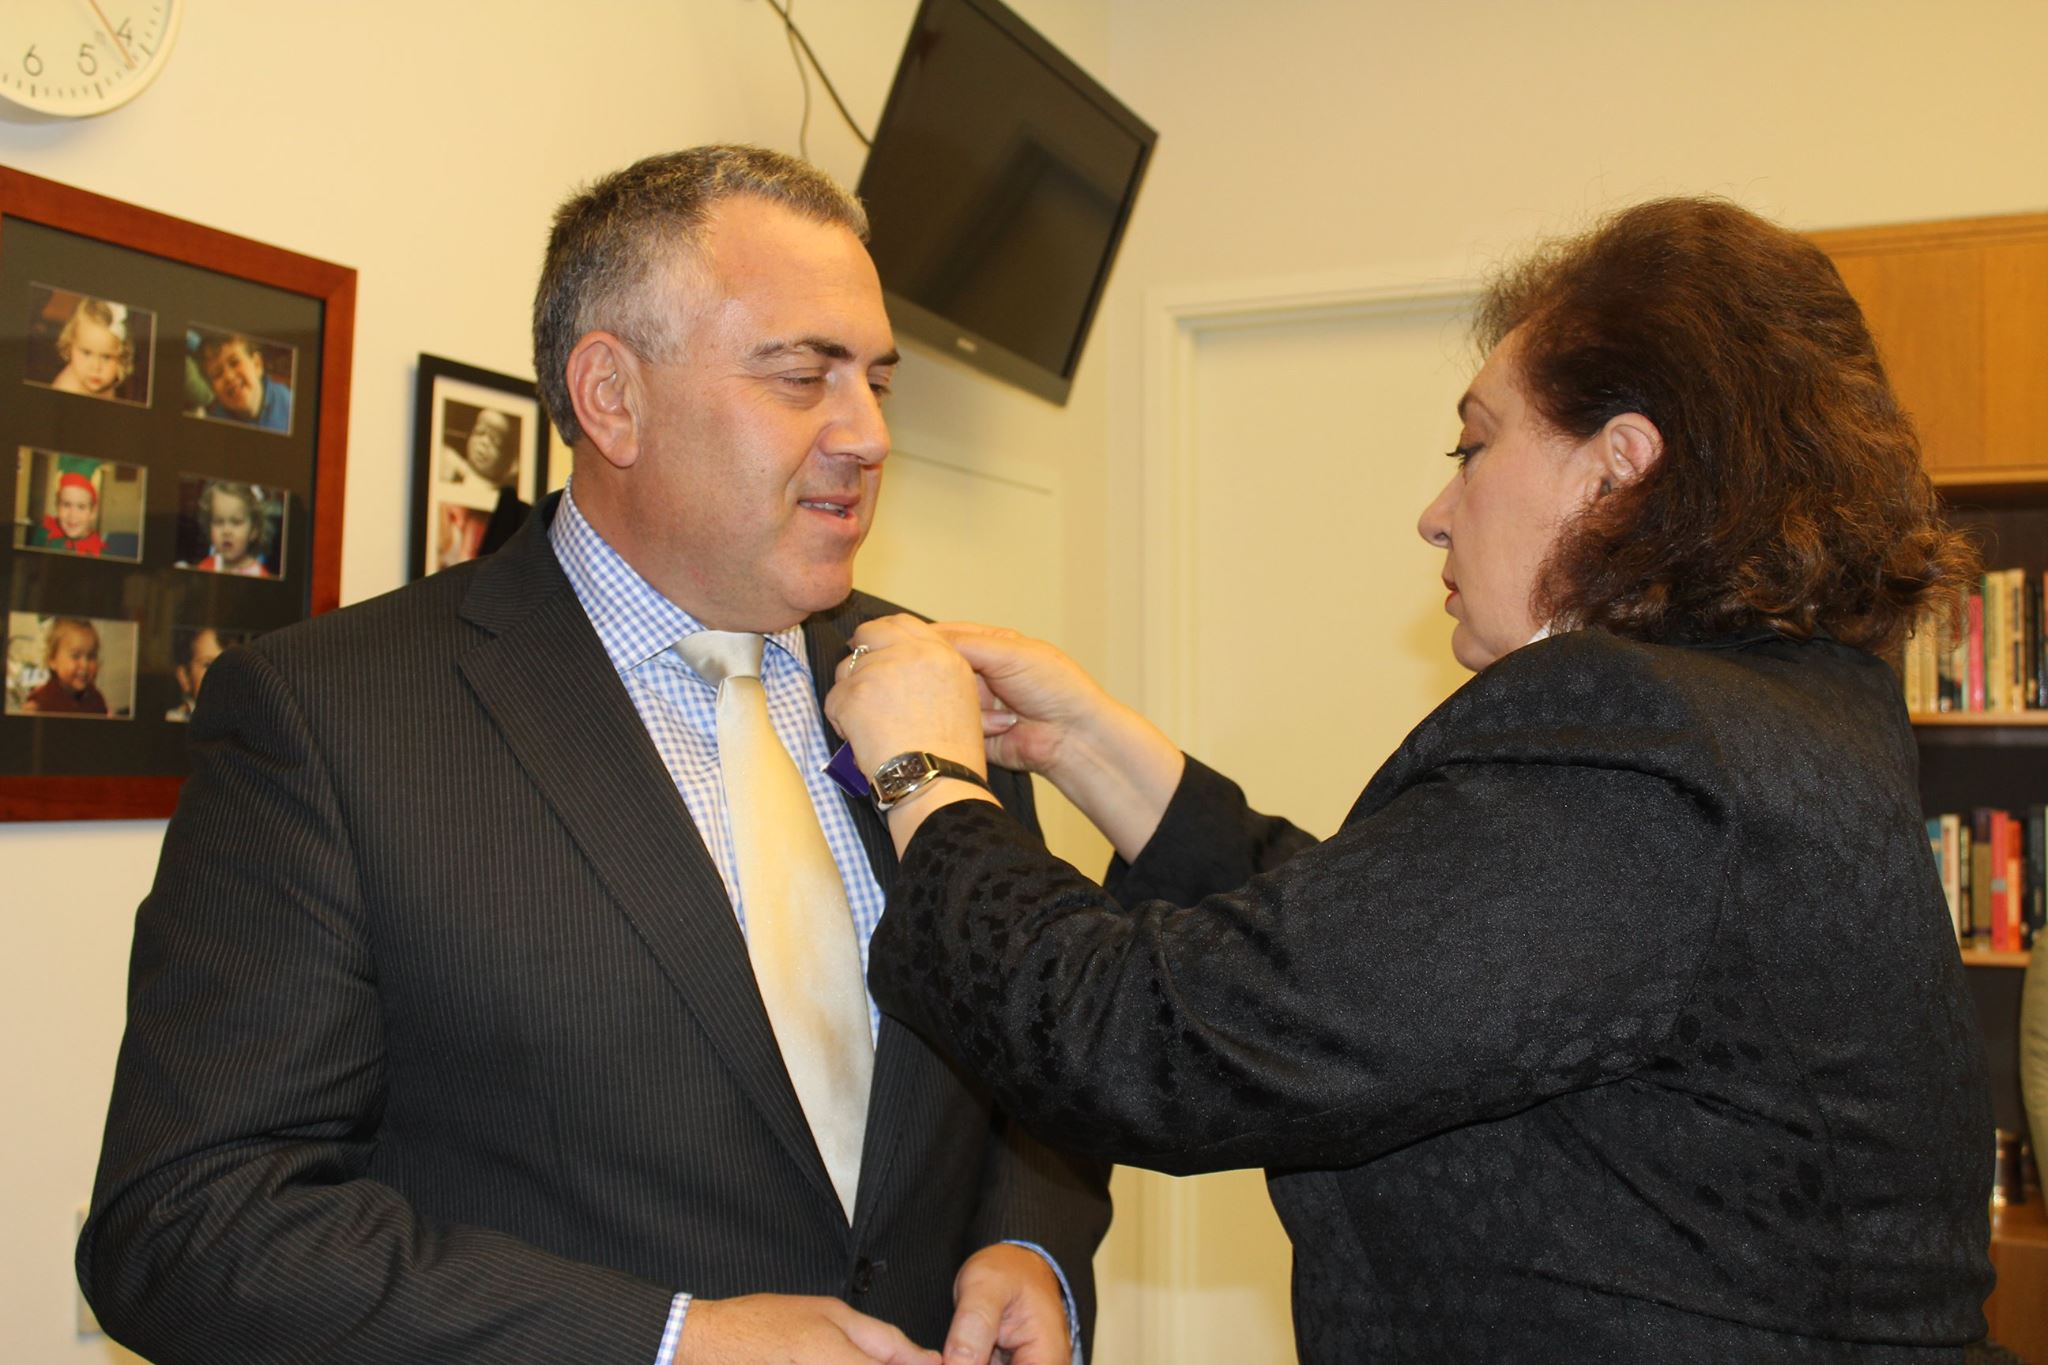 armenian genocide centenary pins worn in parliament question time